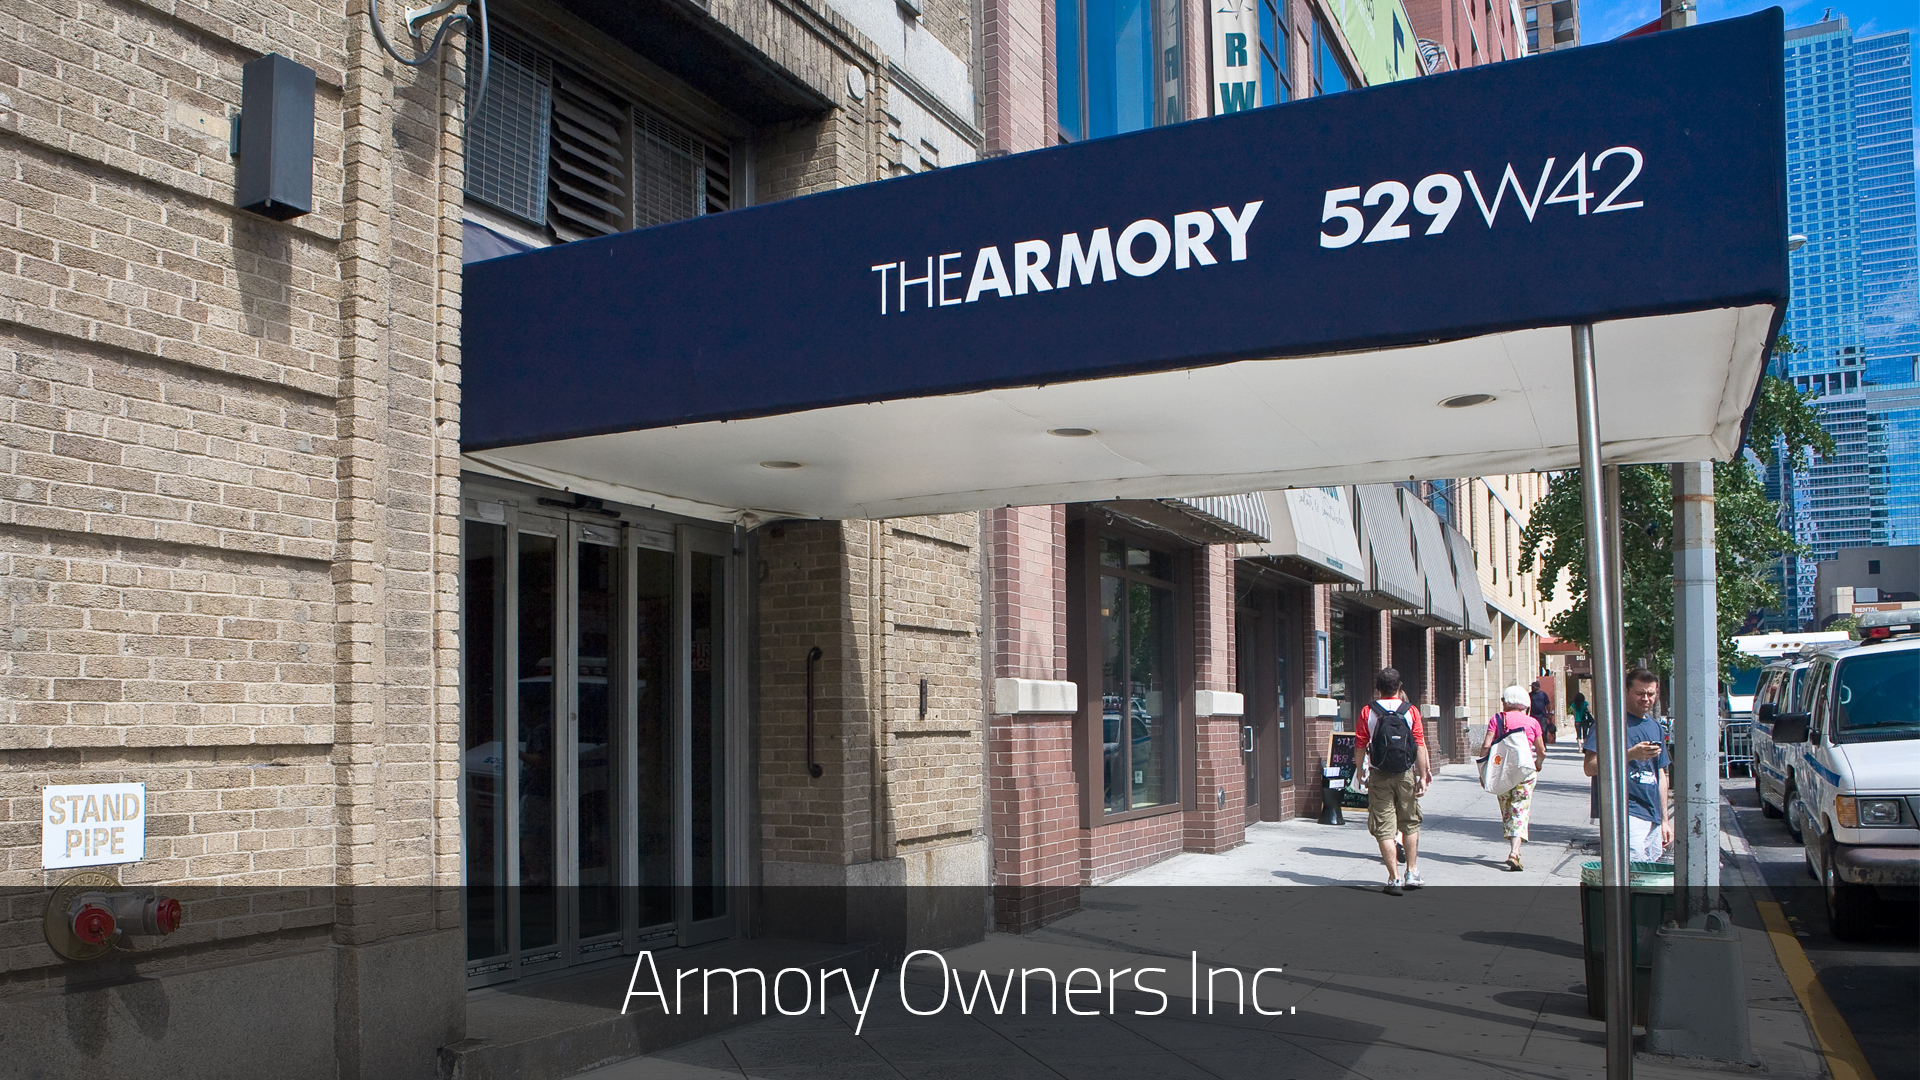 Armory owners inc